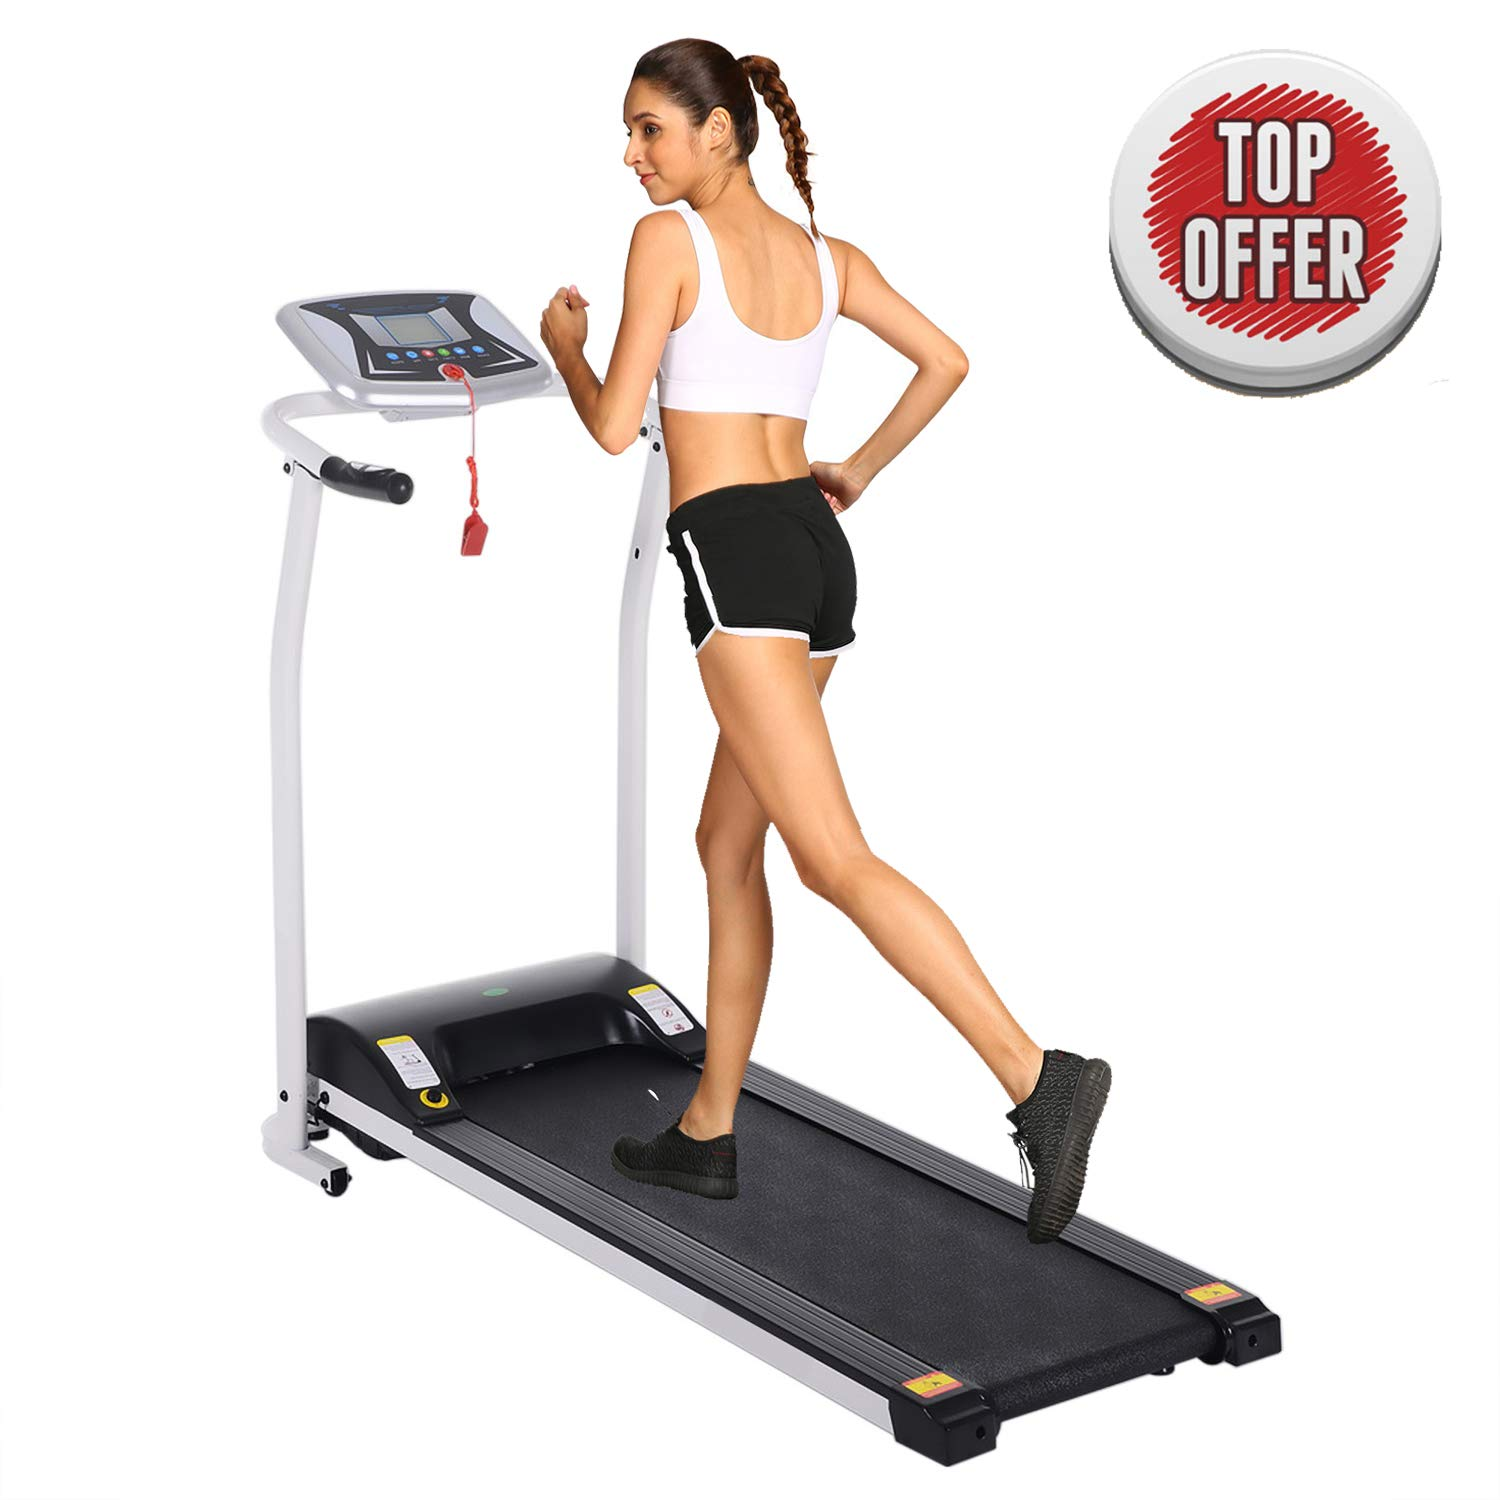 Folding Electric Treadmill Running Machine Power Motorized for Home Gym Exercise Walking Fitness (1.5 HP - White - Not Incline)